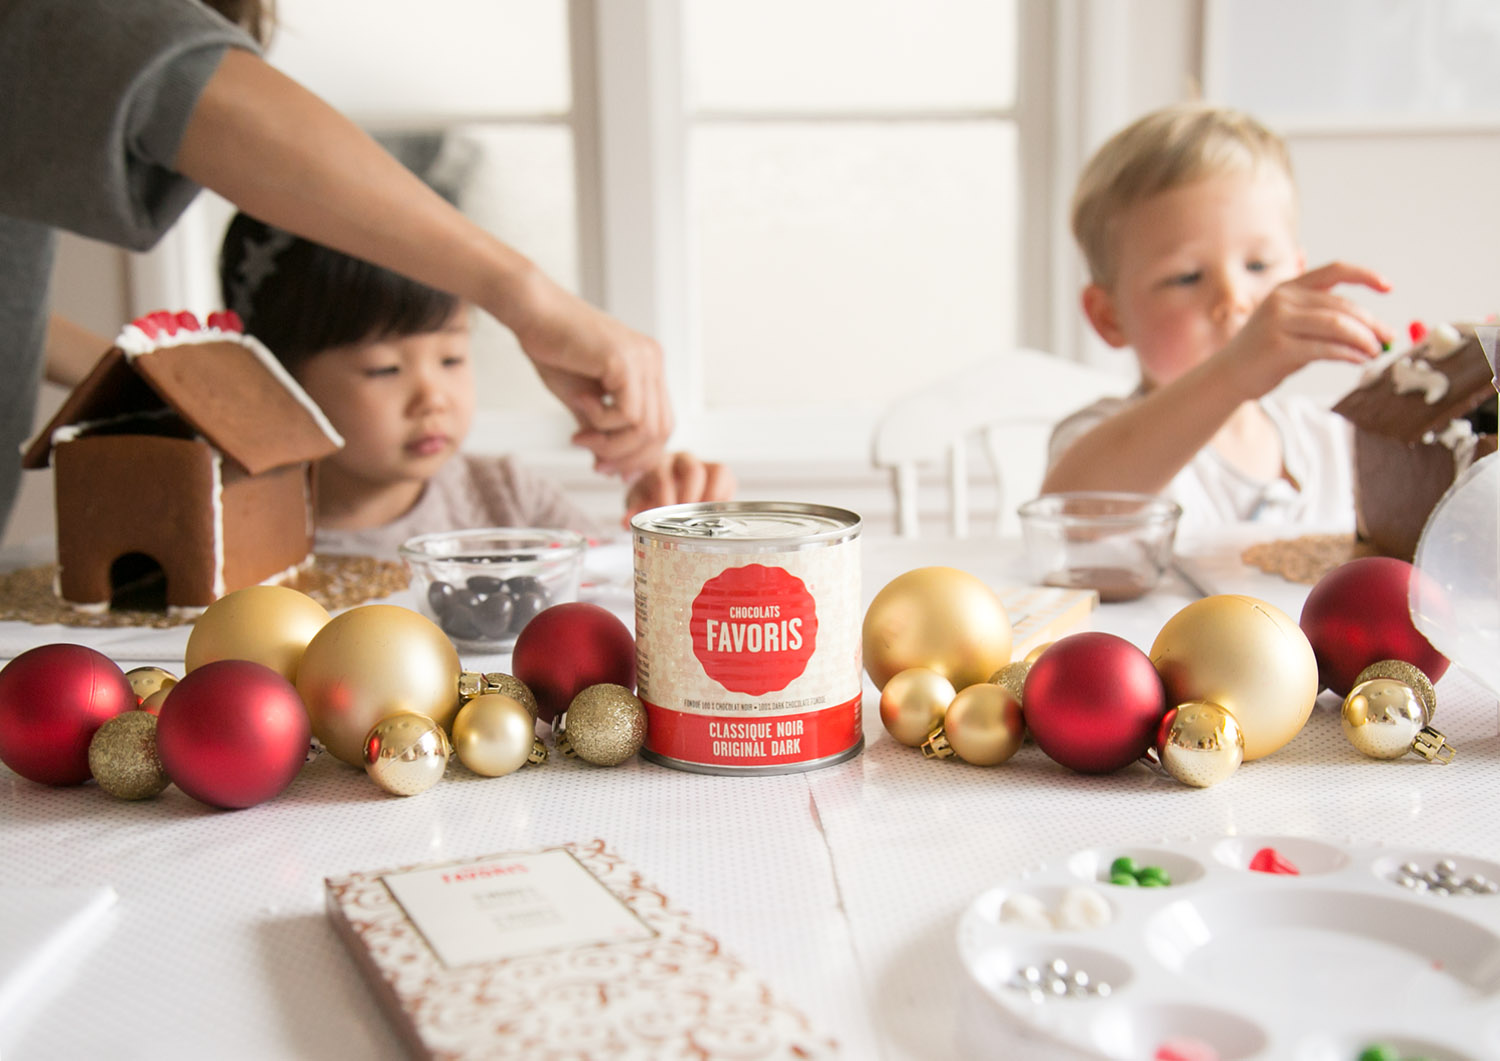 dark fondue by chocolats favoris with kids decorating gingerbread houses